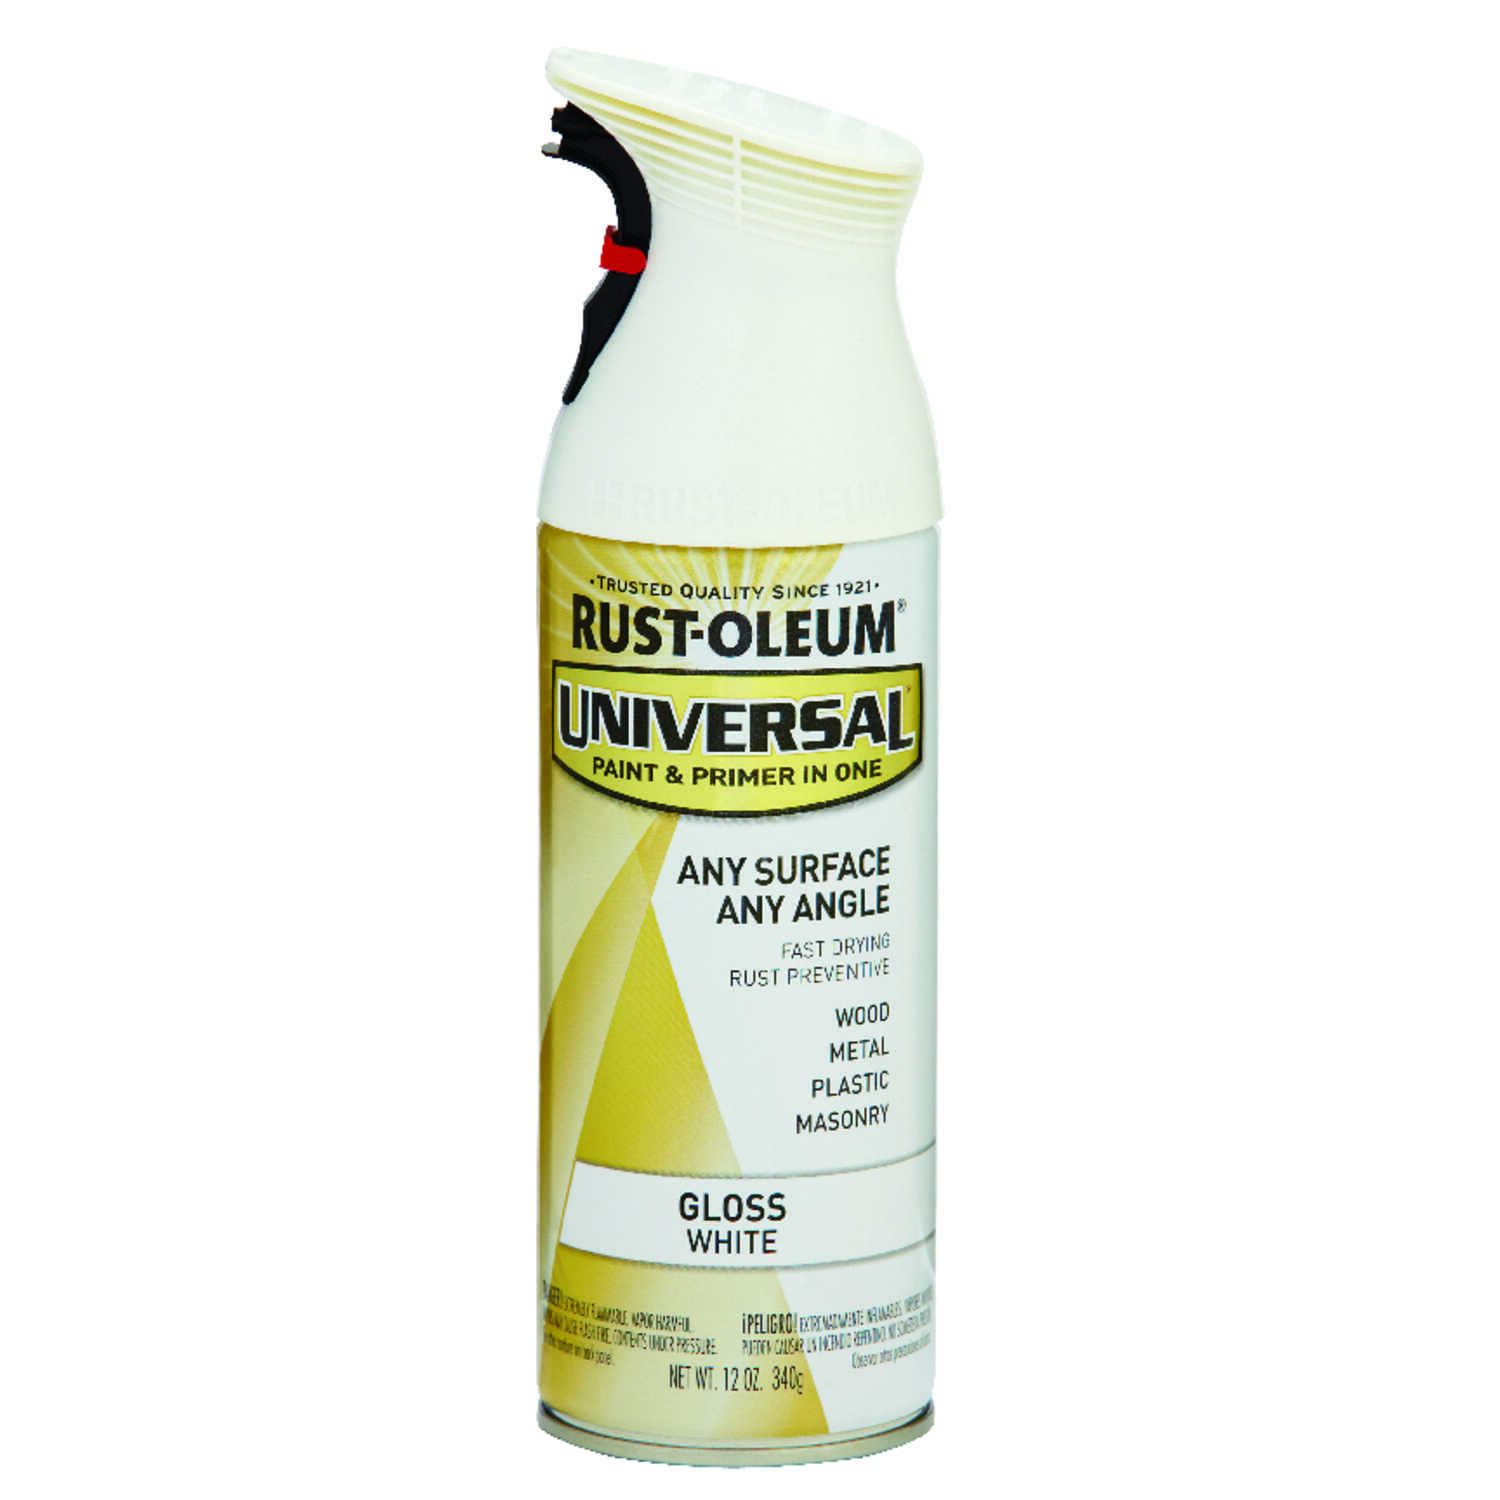 Rust-Oleum  Universal Paint & Primer in One  Gloss  White  Spray Paint  12 oz.